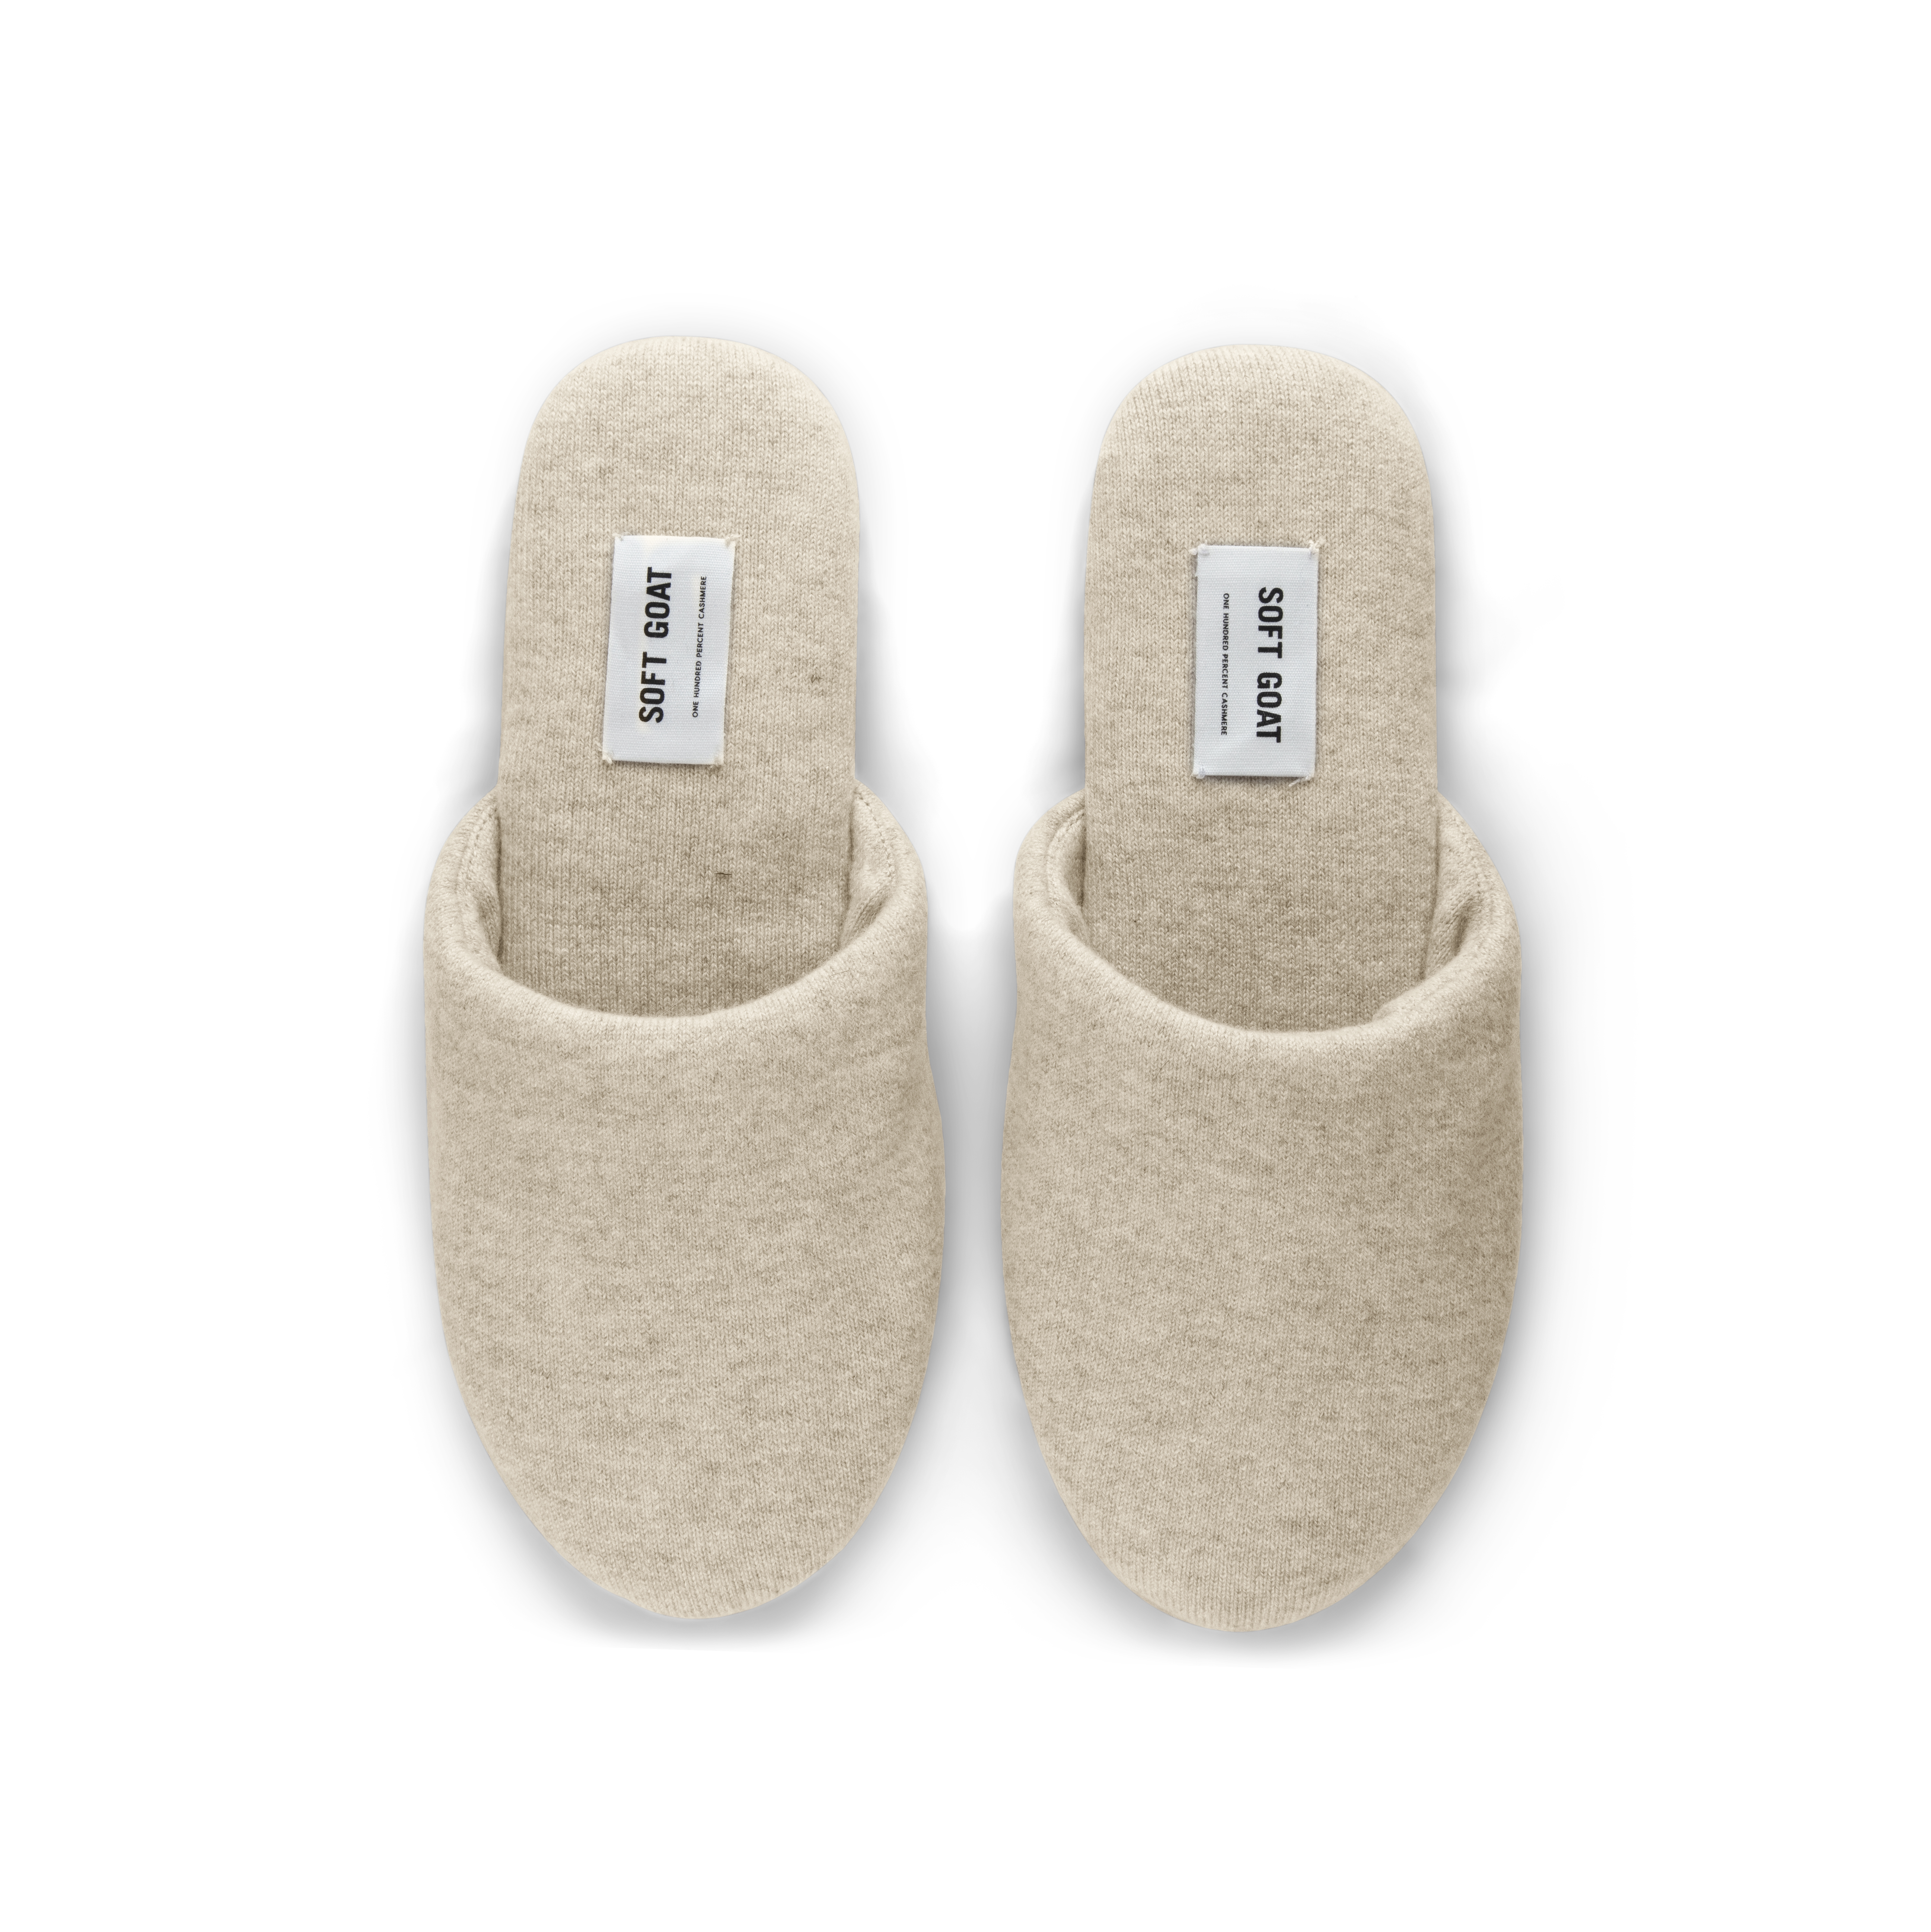 Slippers_Beige_1295SEK